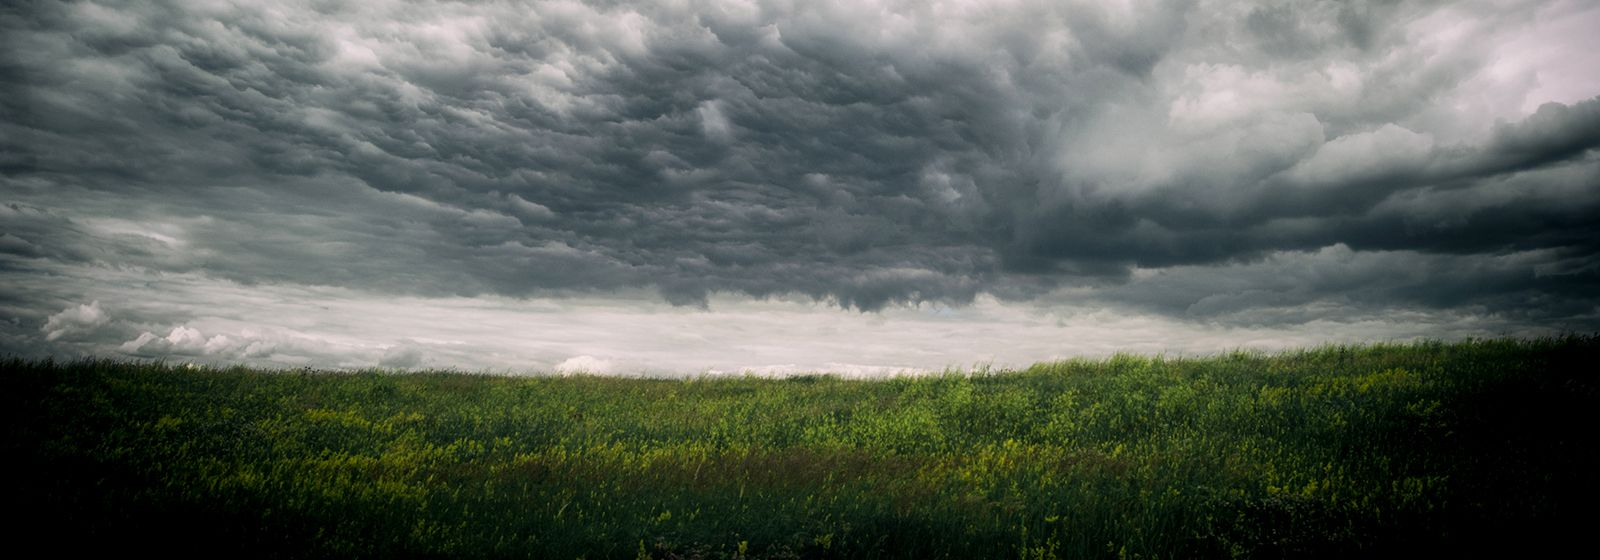 What to do to stay safe in a thunderstorm